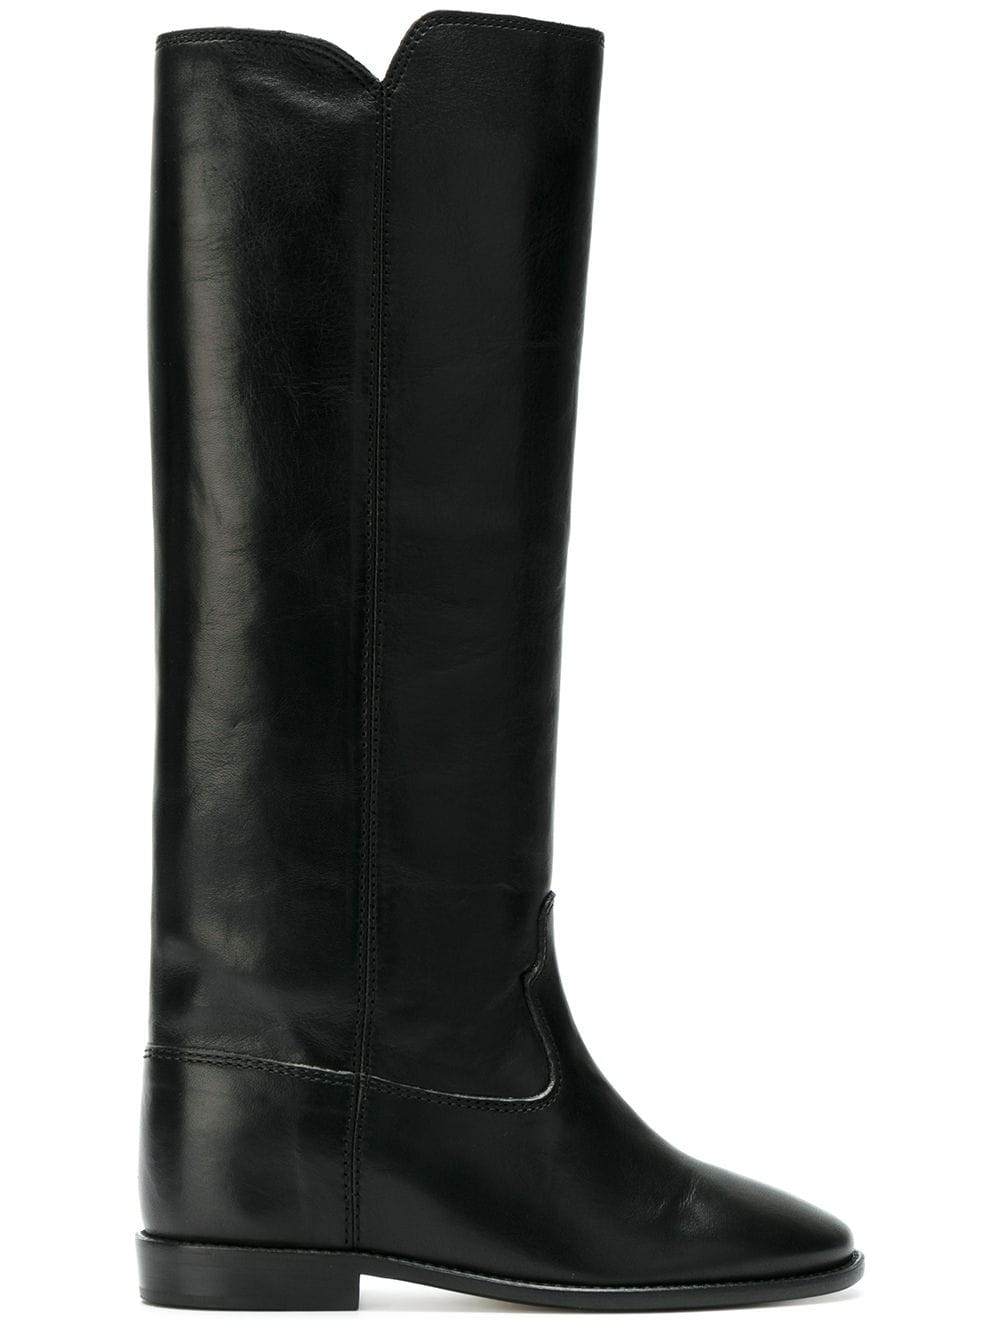 <p class='small-title'>ISABEL MARANT</p>Calf-High Boots